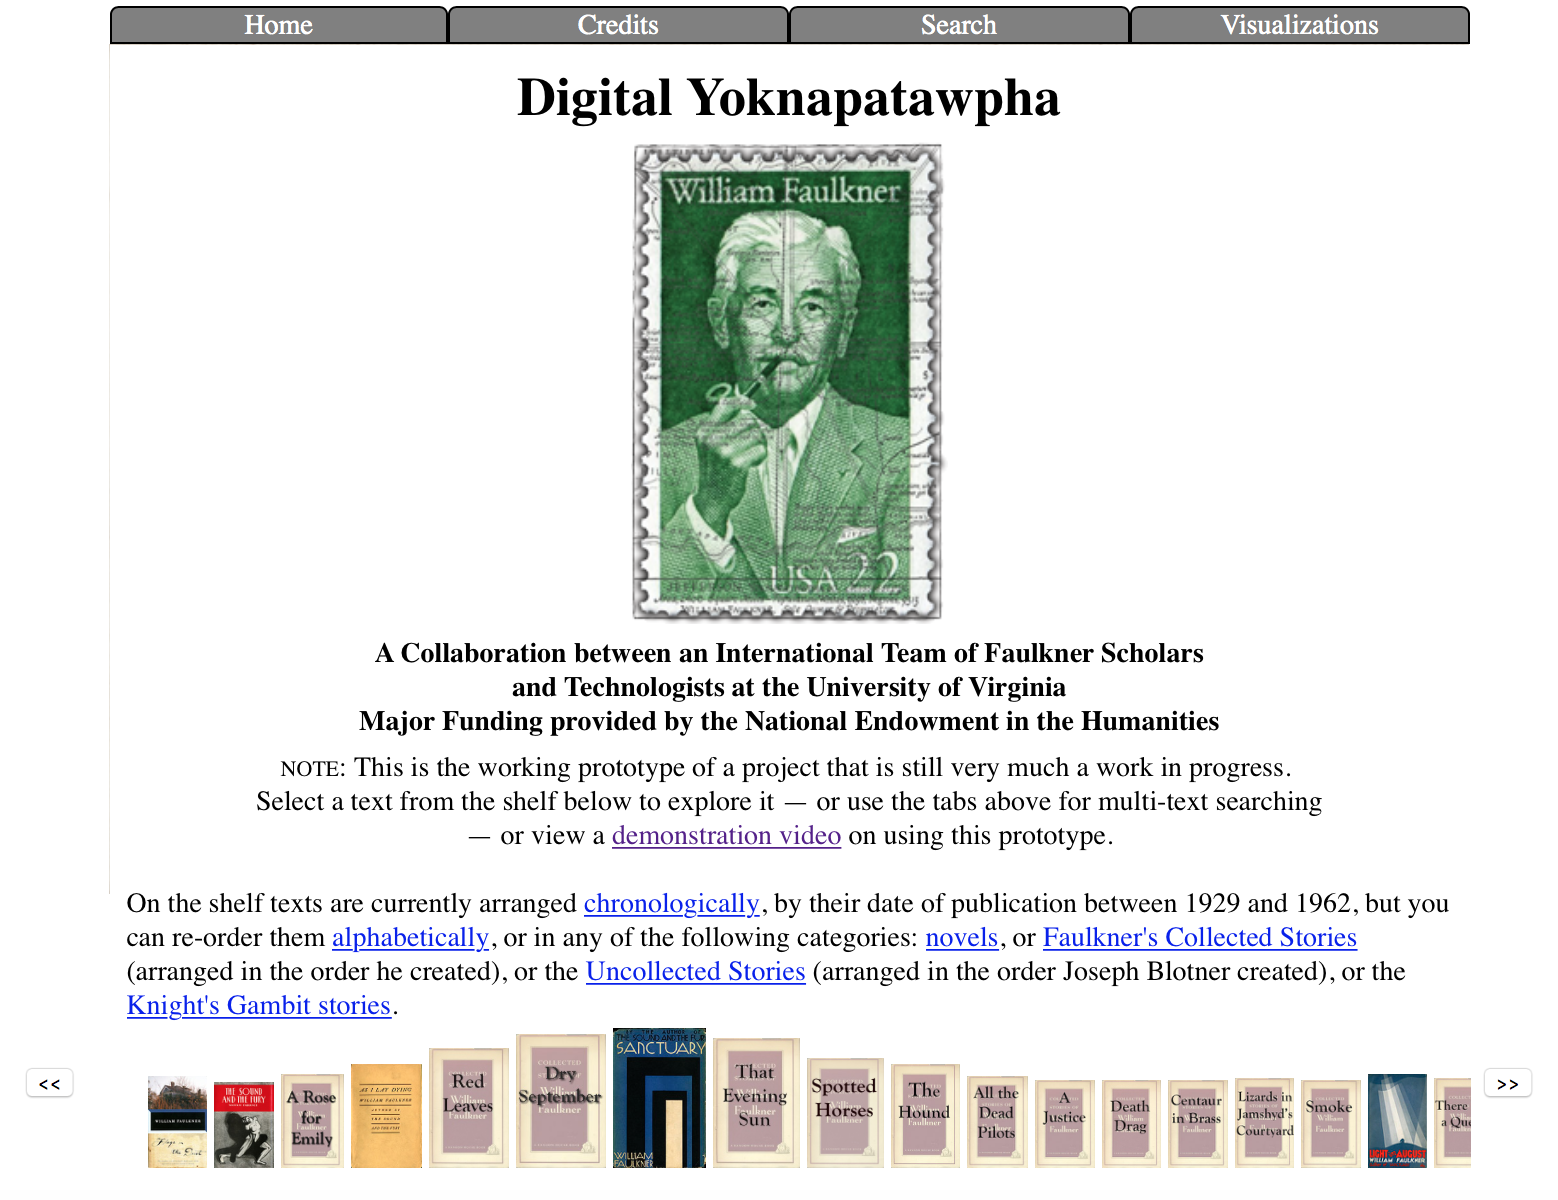 Digital Yoknapatawpha: Collaboratively Recreating Faulkner's County